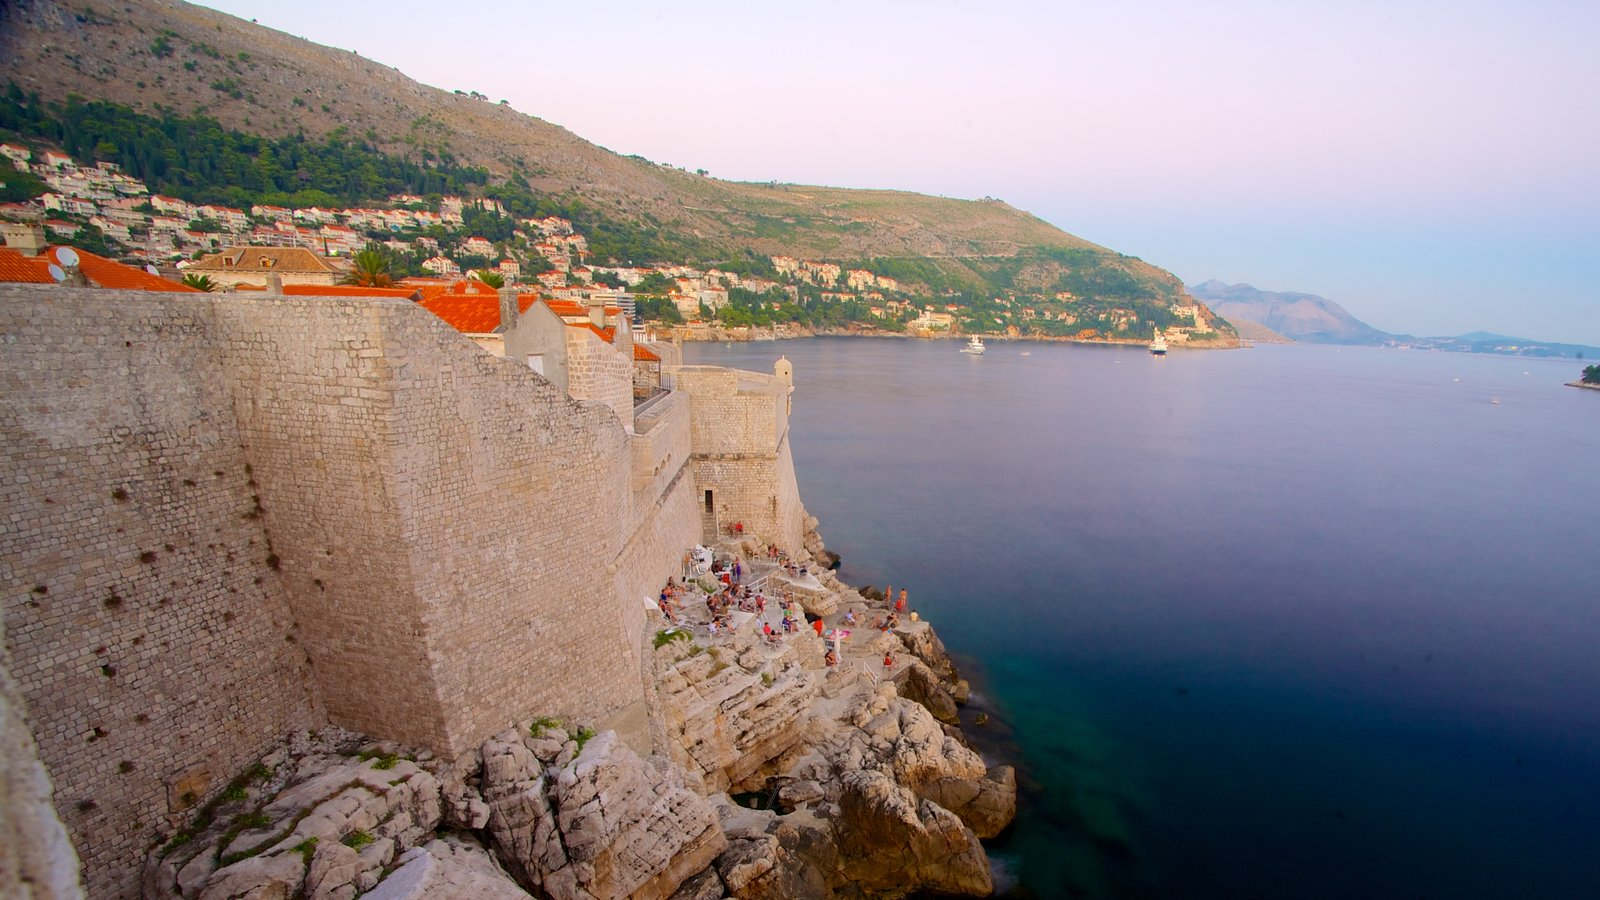 Dubrovnik - Southern Dalmatia featuring a coastal town, rugged coastline and heritage architecture